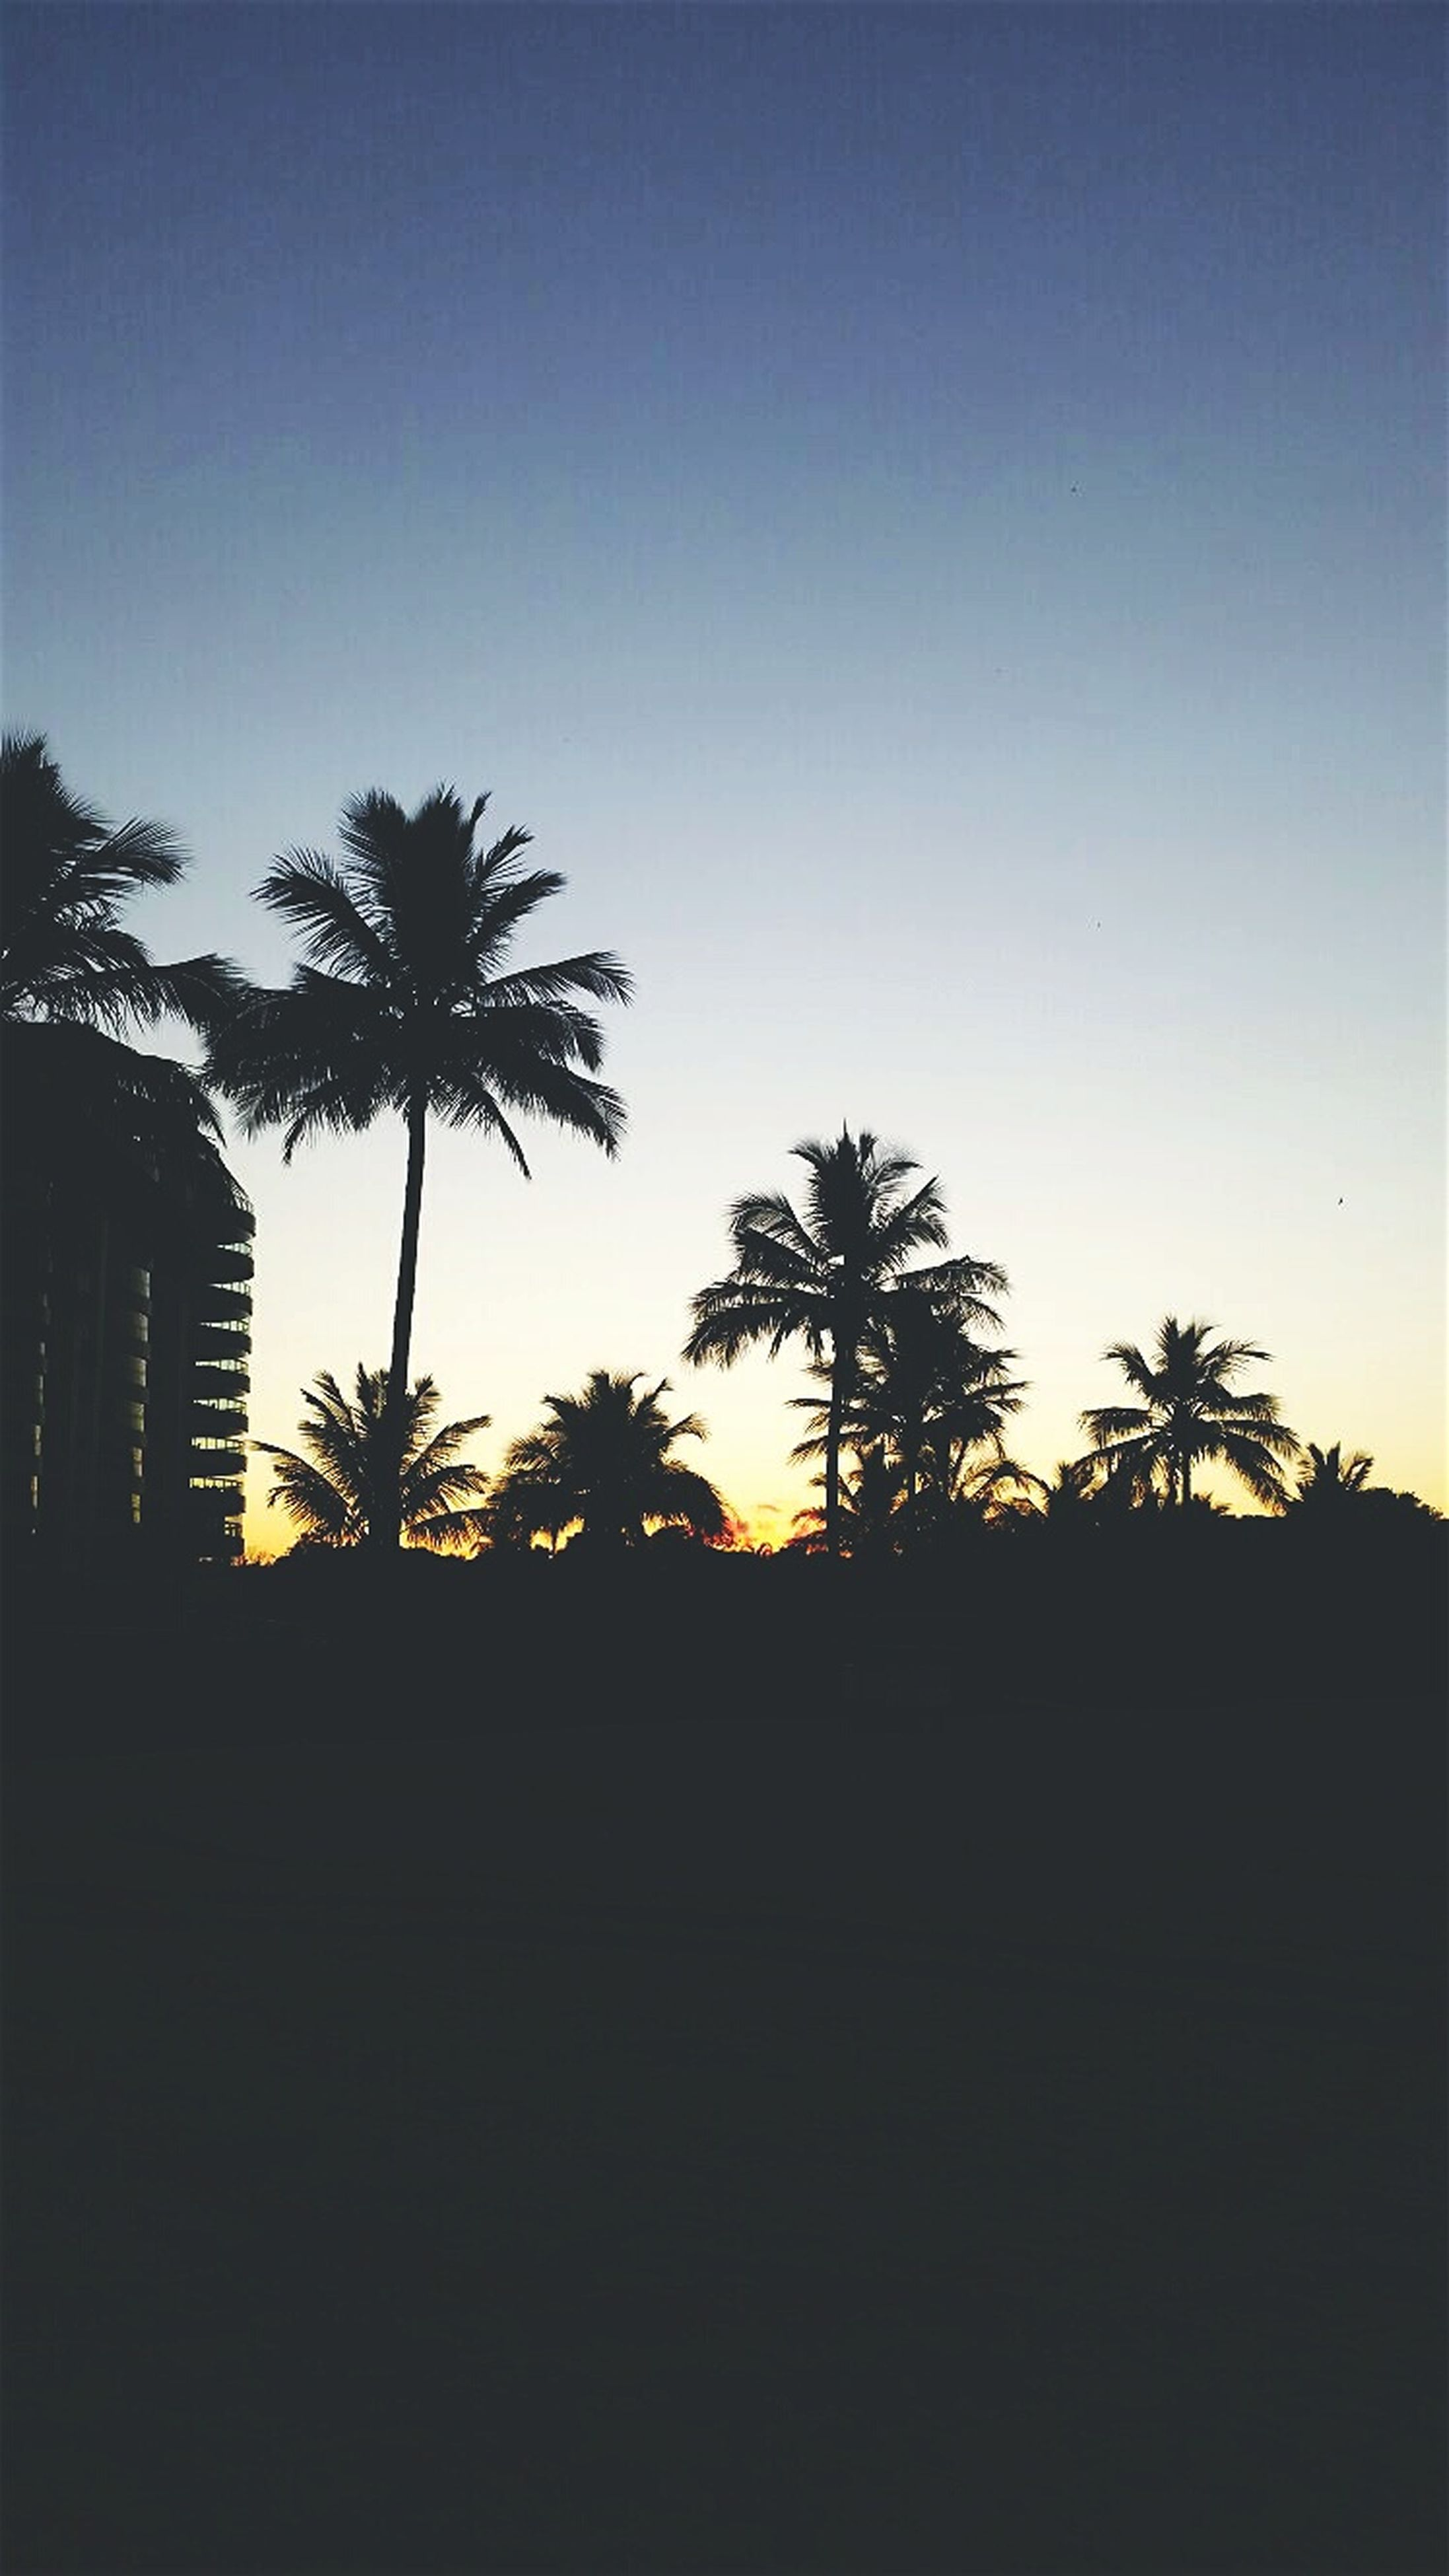 silhouette, sunset, palm tree, tree, copy space, clear sky, built structure, building exterior, tranquility, beauty in nature, architecture, tranquil scene, scenics, nature, sky, dark, orange color, outline, growth, no people